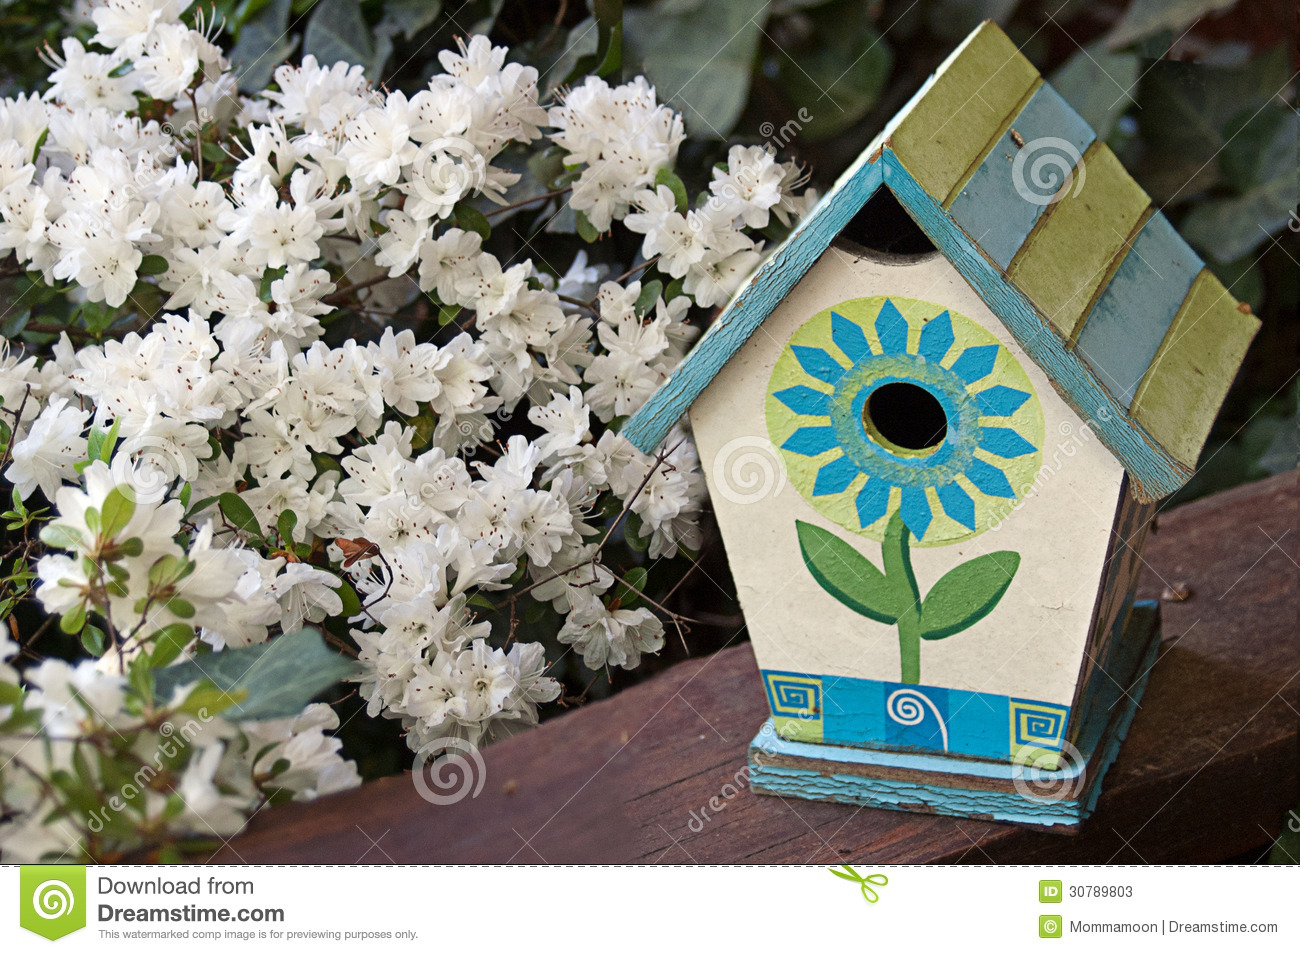 Painted Birdhouse And White Flowers Stock Image - Image ...